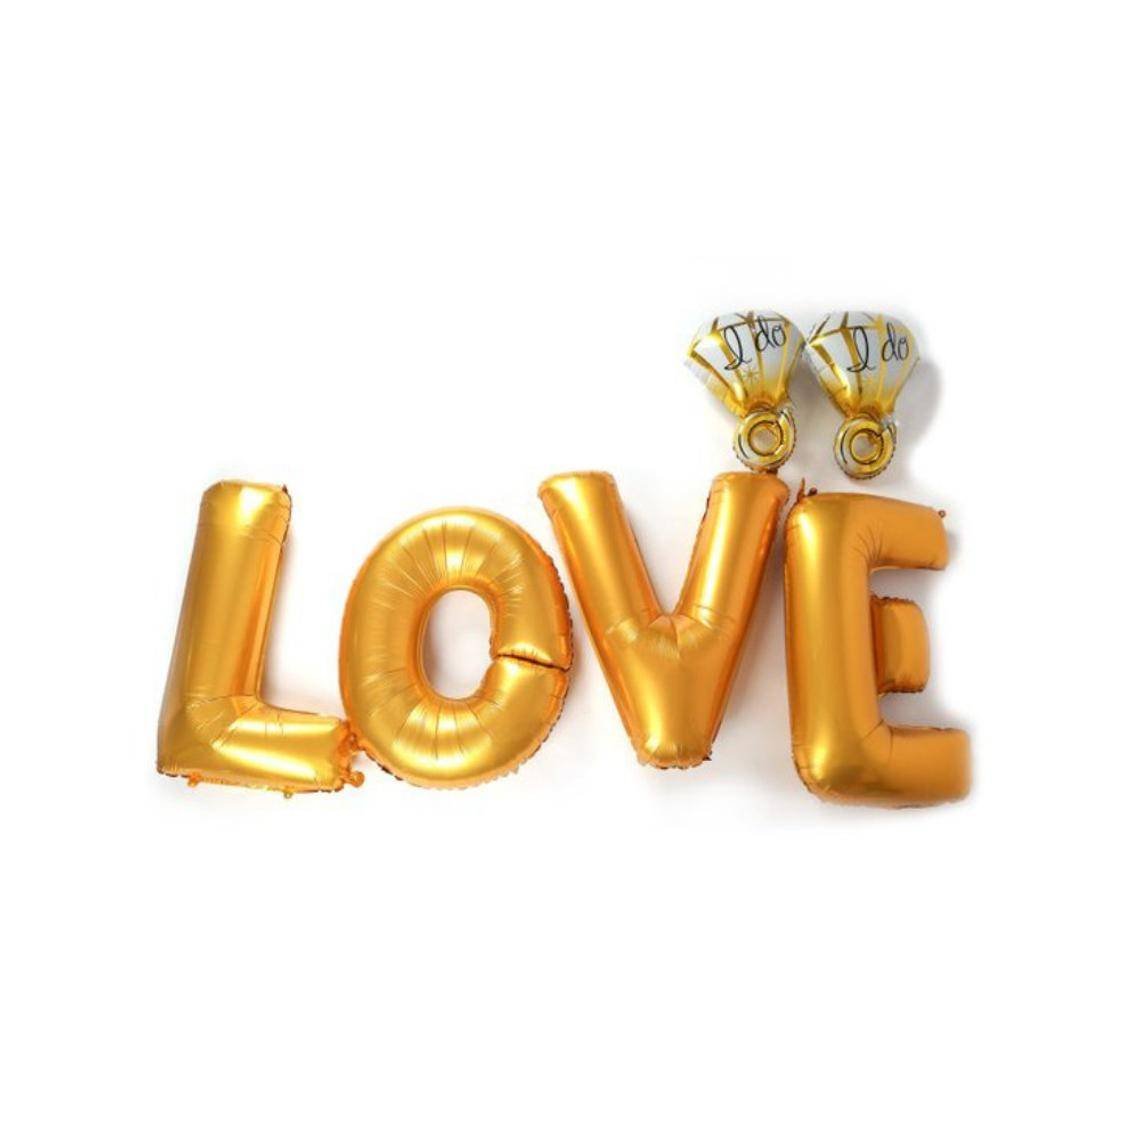 Love & Diamond Decoration Set | Engagement Party Decoration Balloon | Wedding Decoration | Proposal Party Decoration